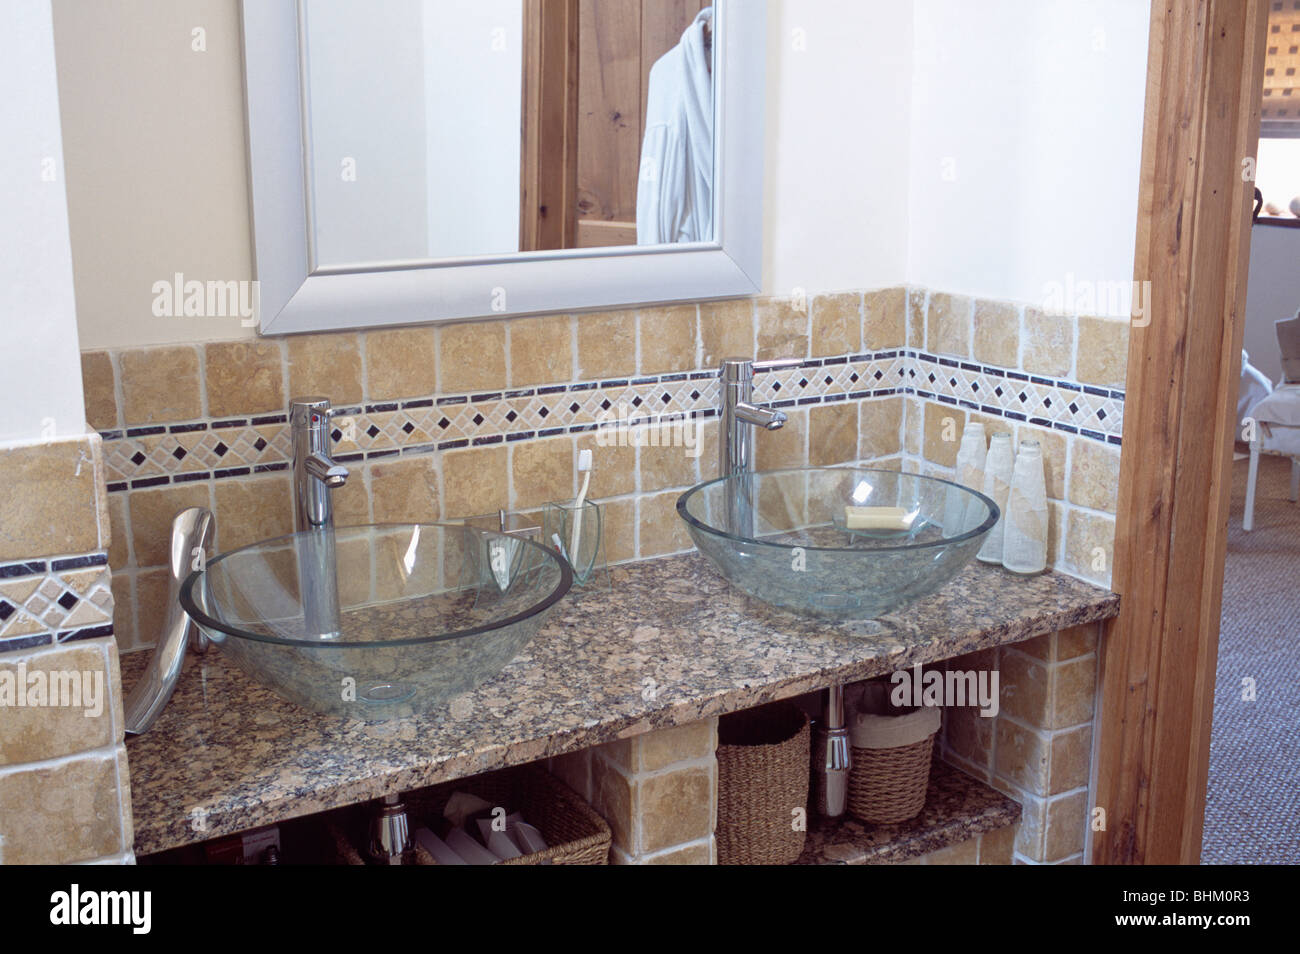 Glas Doppelwaschtisch Marble Basins Stock Photos And Marble Basins Stock Images